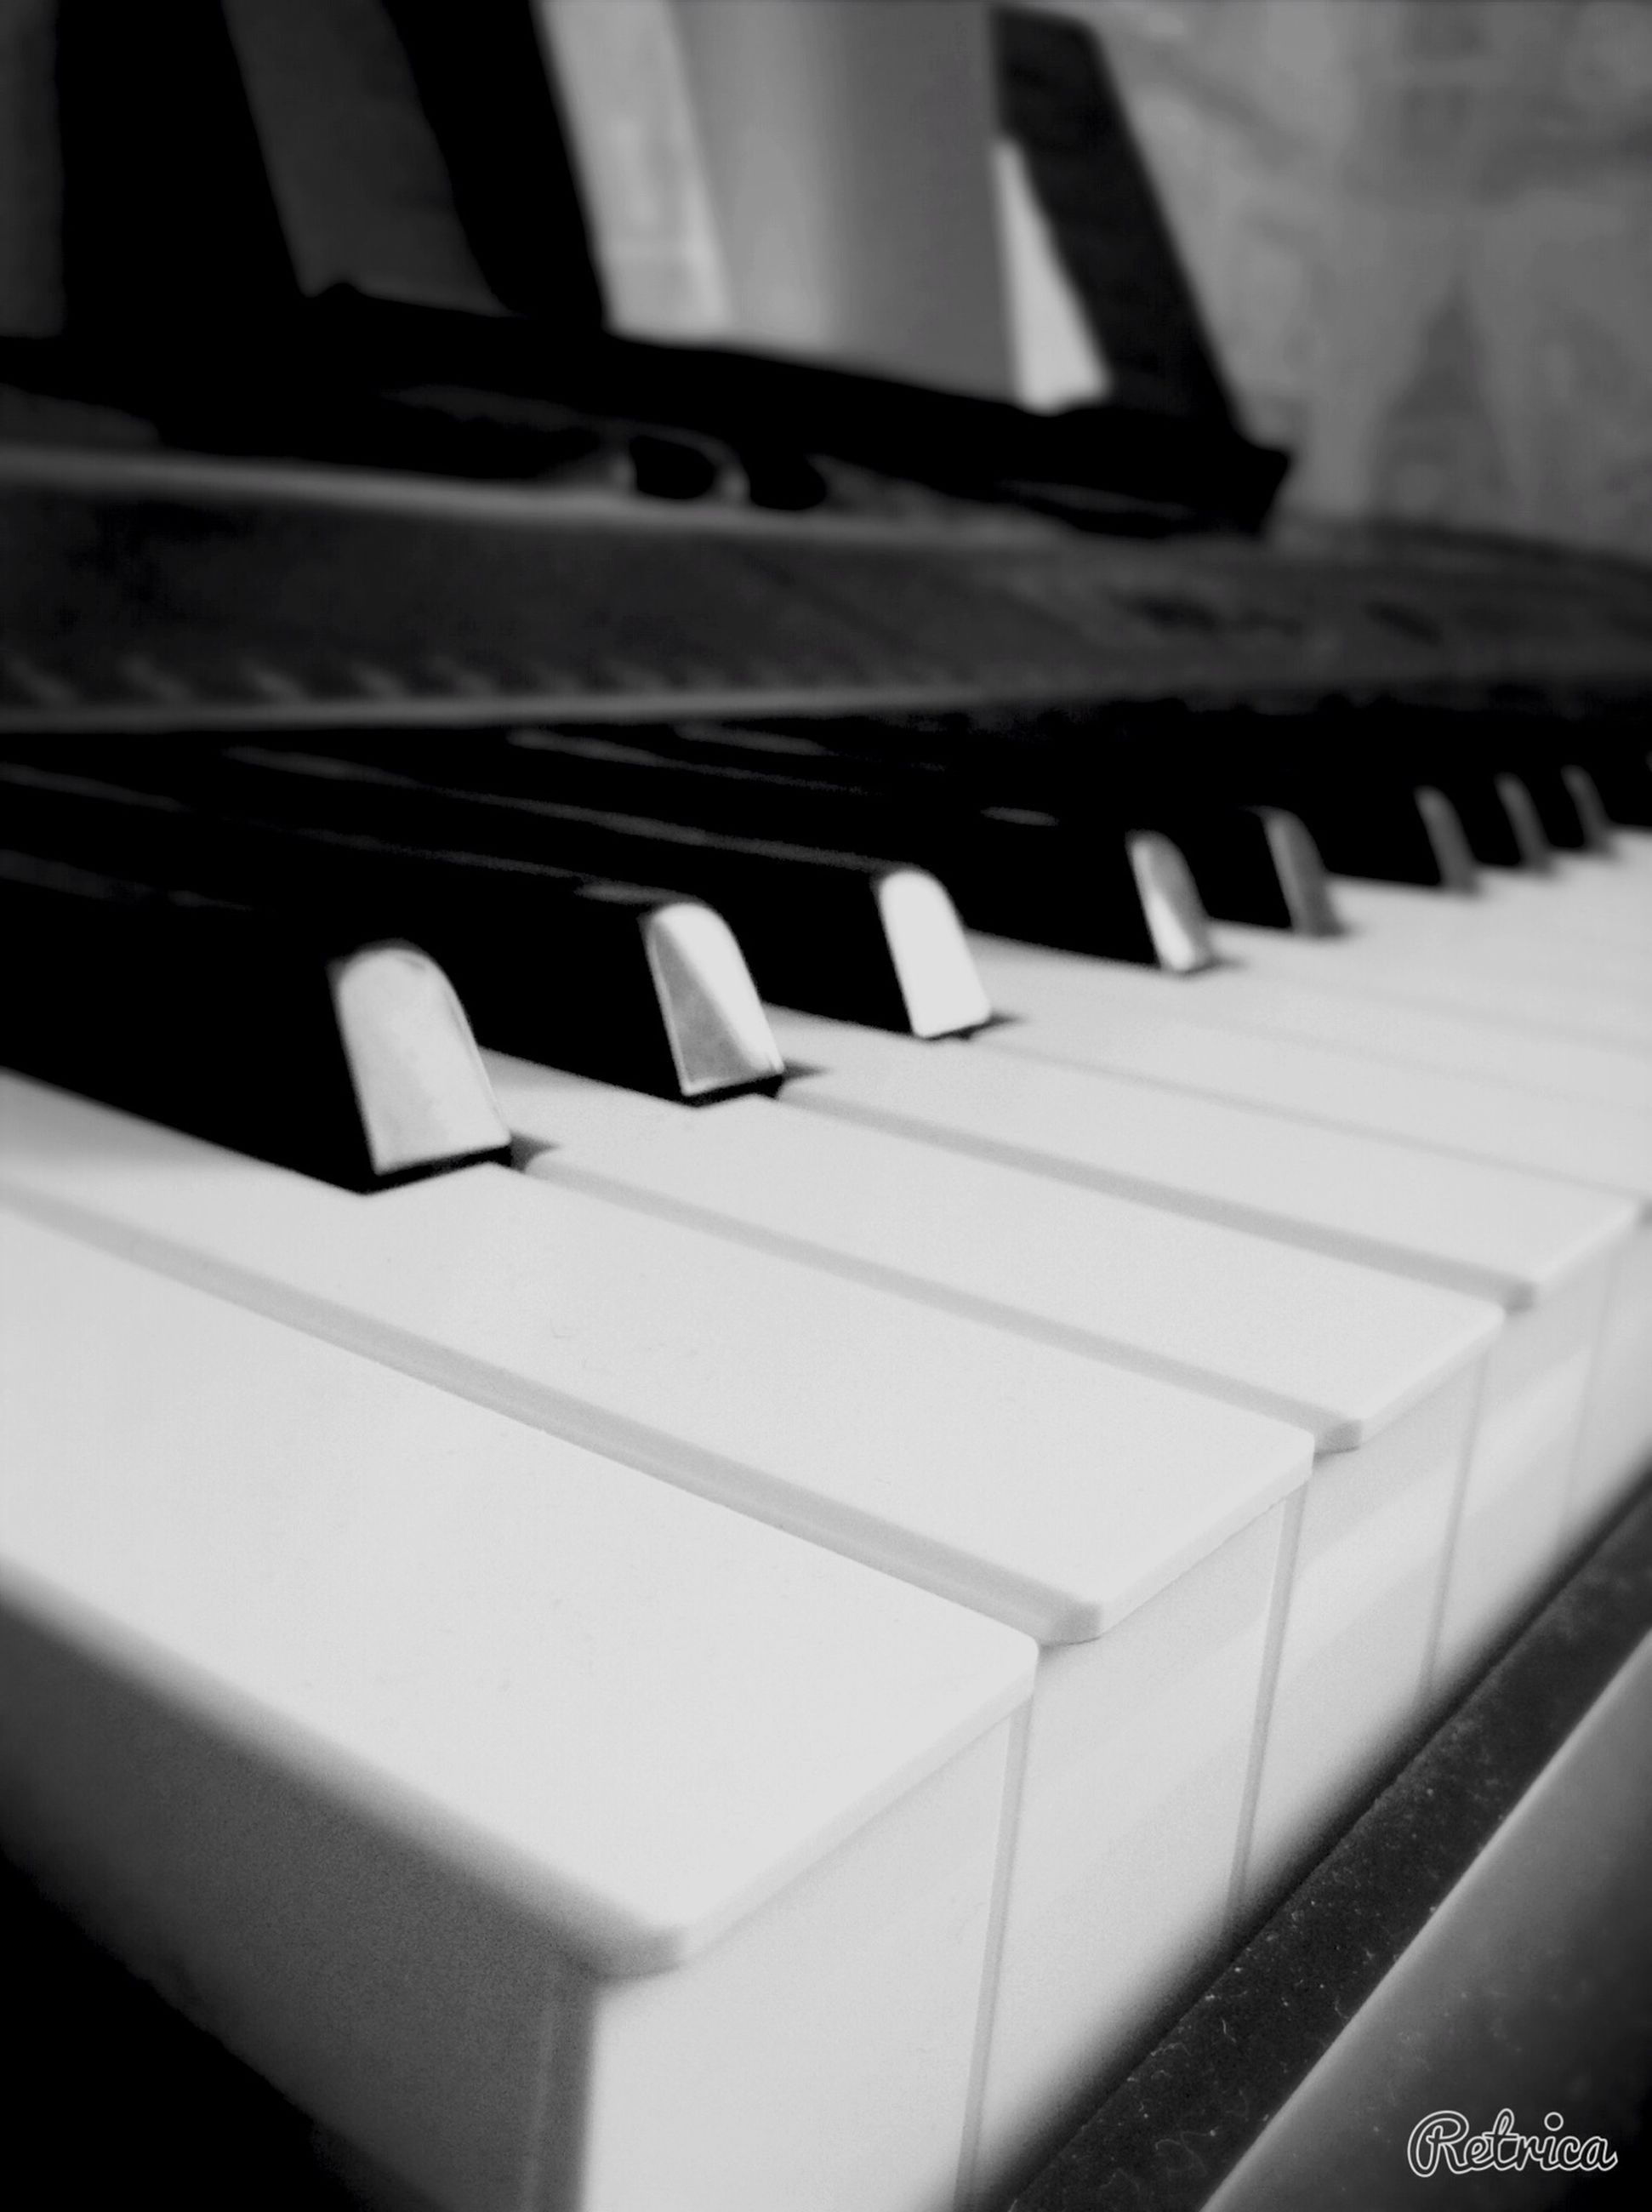 indoors, piano key, piano, close-up, music, in a row, high angle view, arts culture and entertainment, musical instrument, no people, repetition, selective focus, steps, staircase, shadow, pattern, focus on foreground, musical equipment, part of, steps and staircases